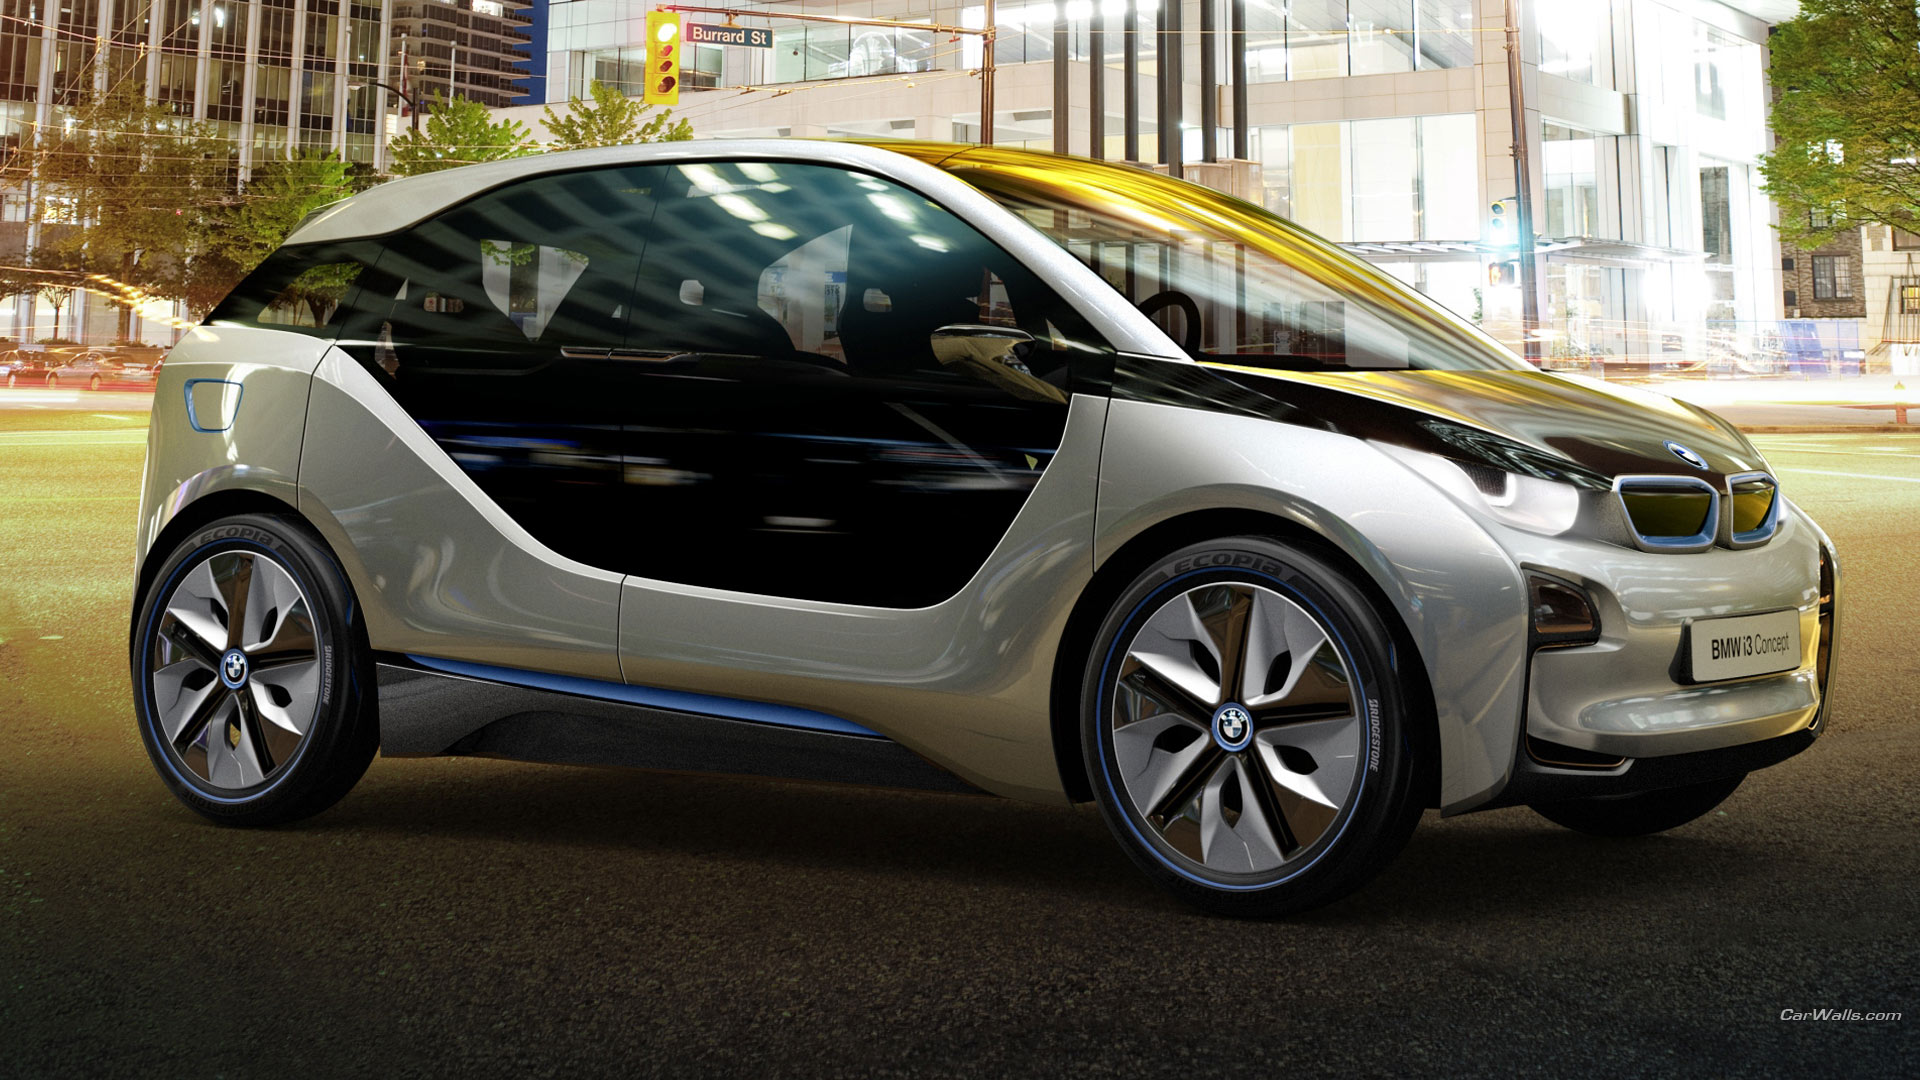 BMW i3 Concept HD Wallpaper   Background Image   1920x1080 ...